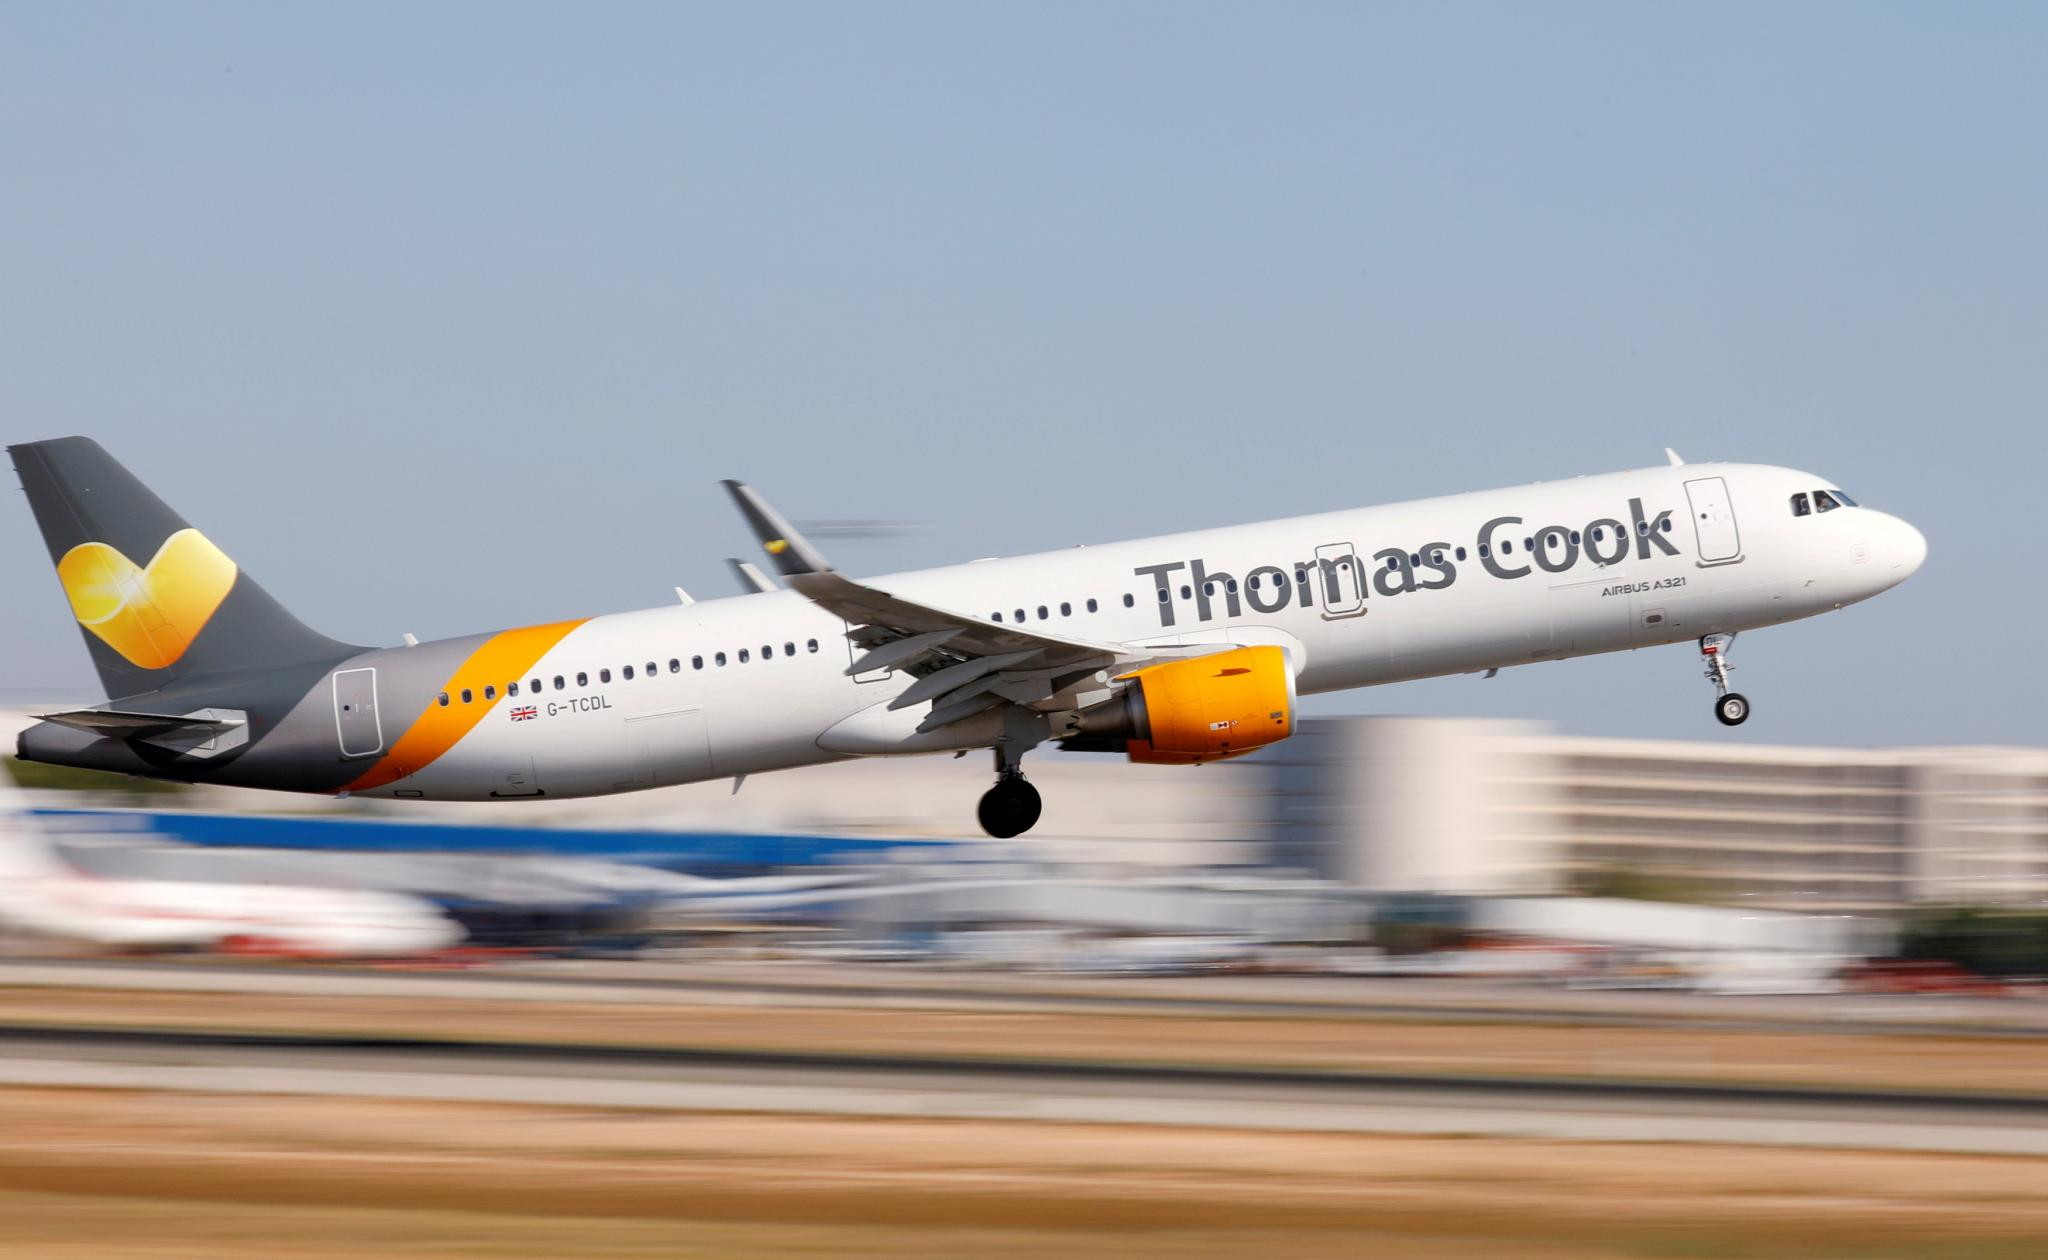 Thomas Cook has approached United Kingdom government for bailout funds - FT